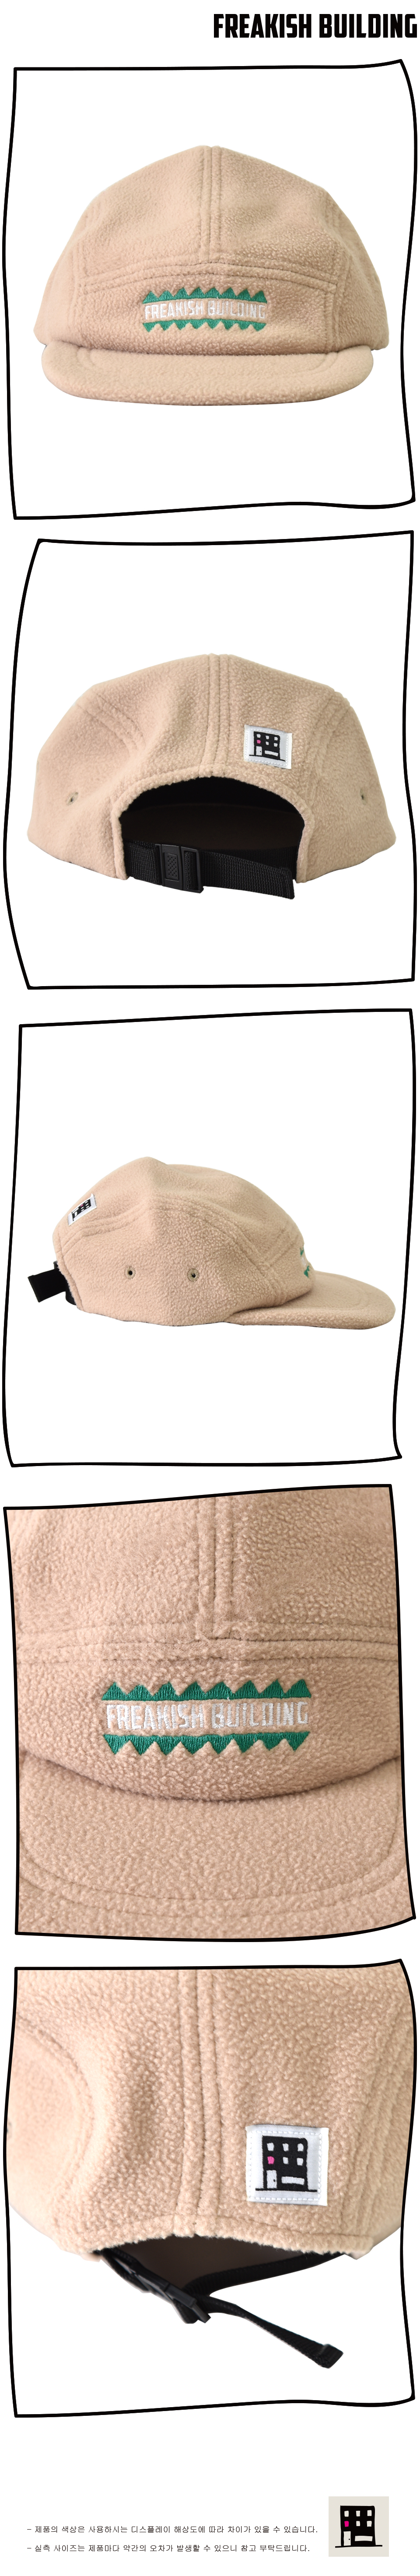 #33 LINFEVER FLEECE CAMP CAP (BEIGE) 03.jpg